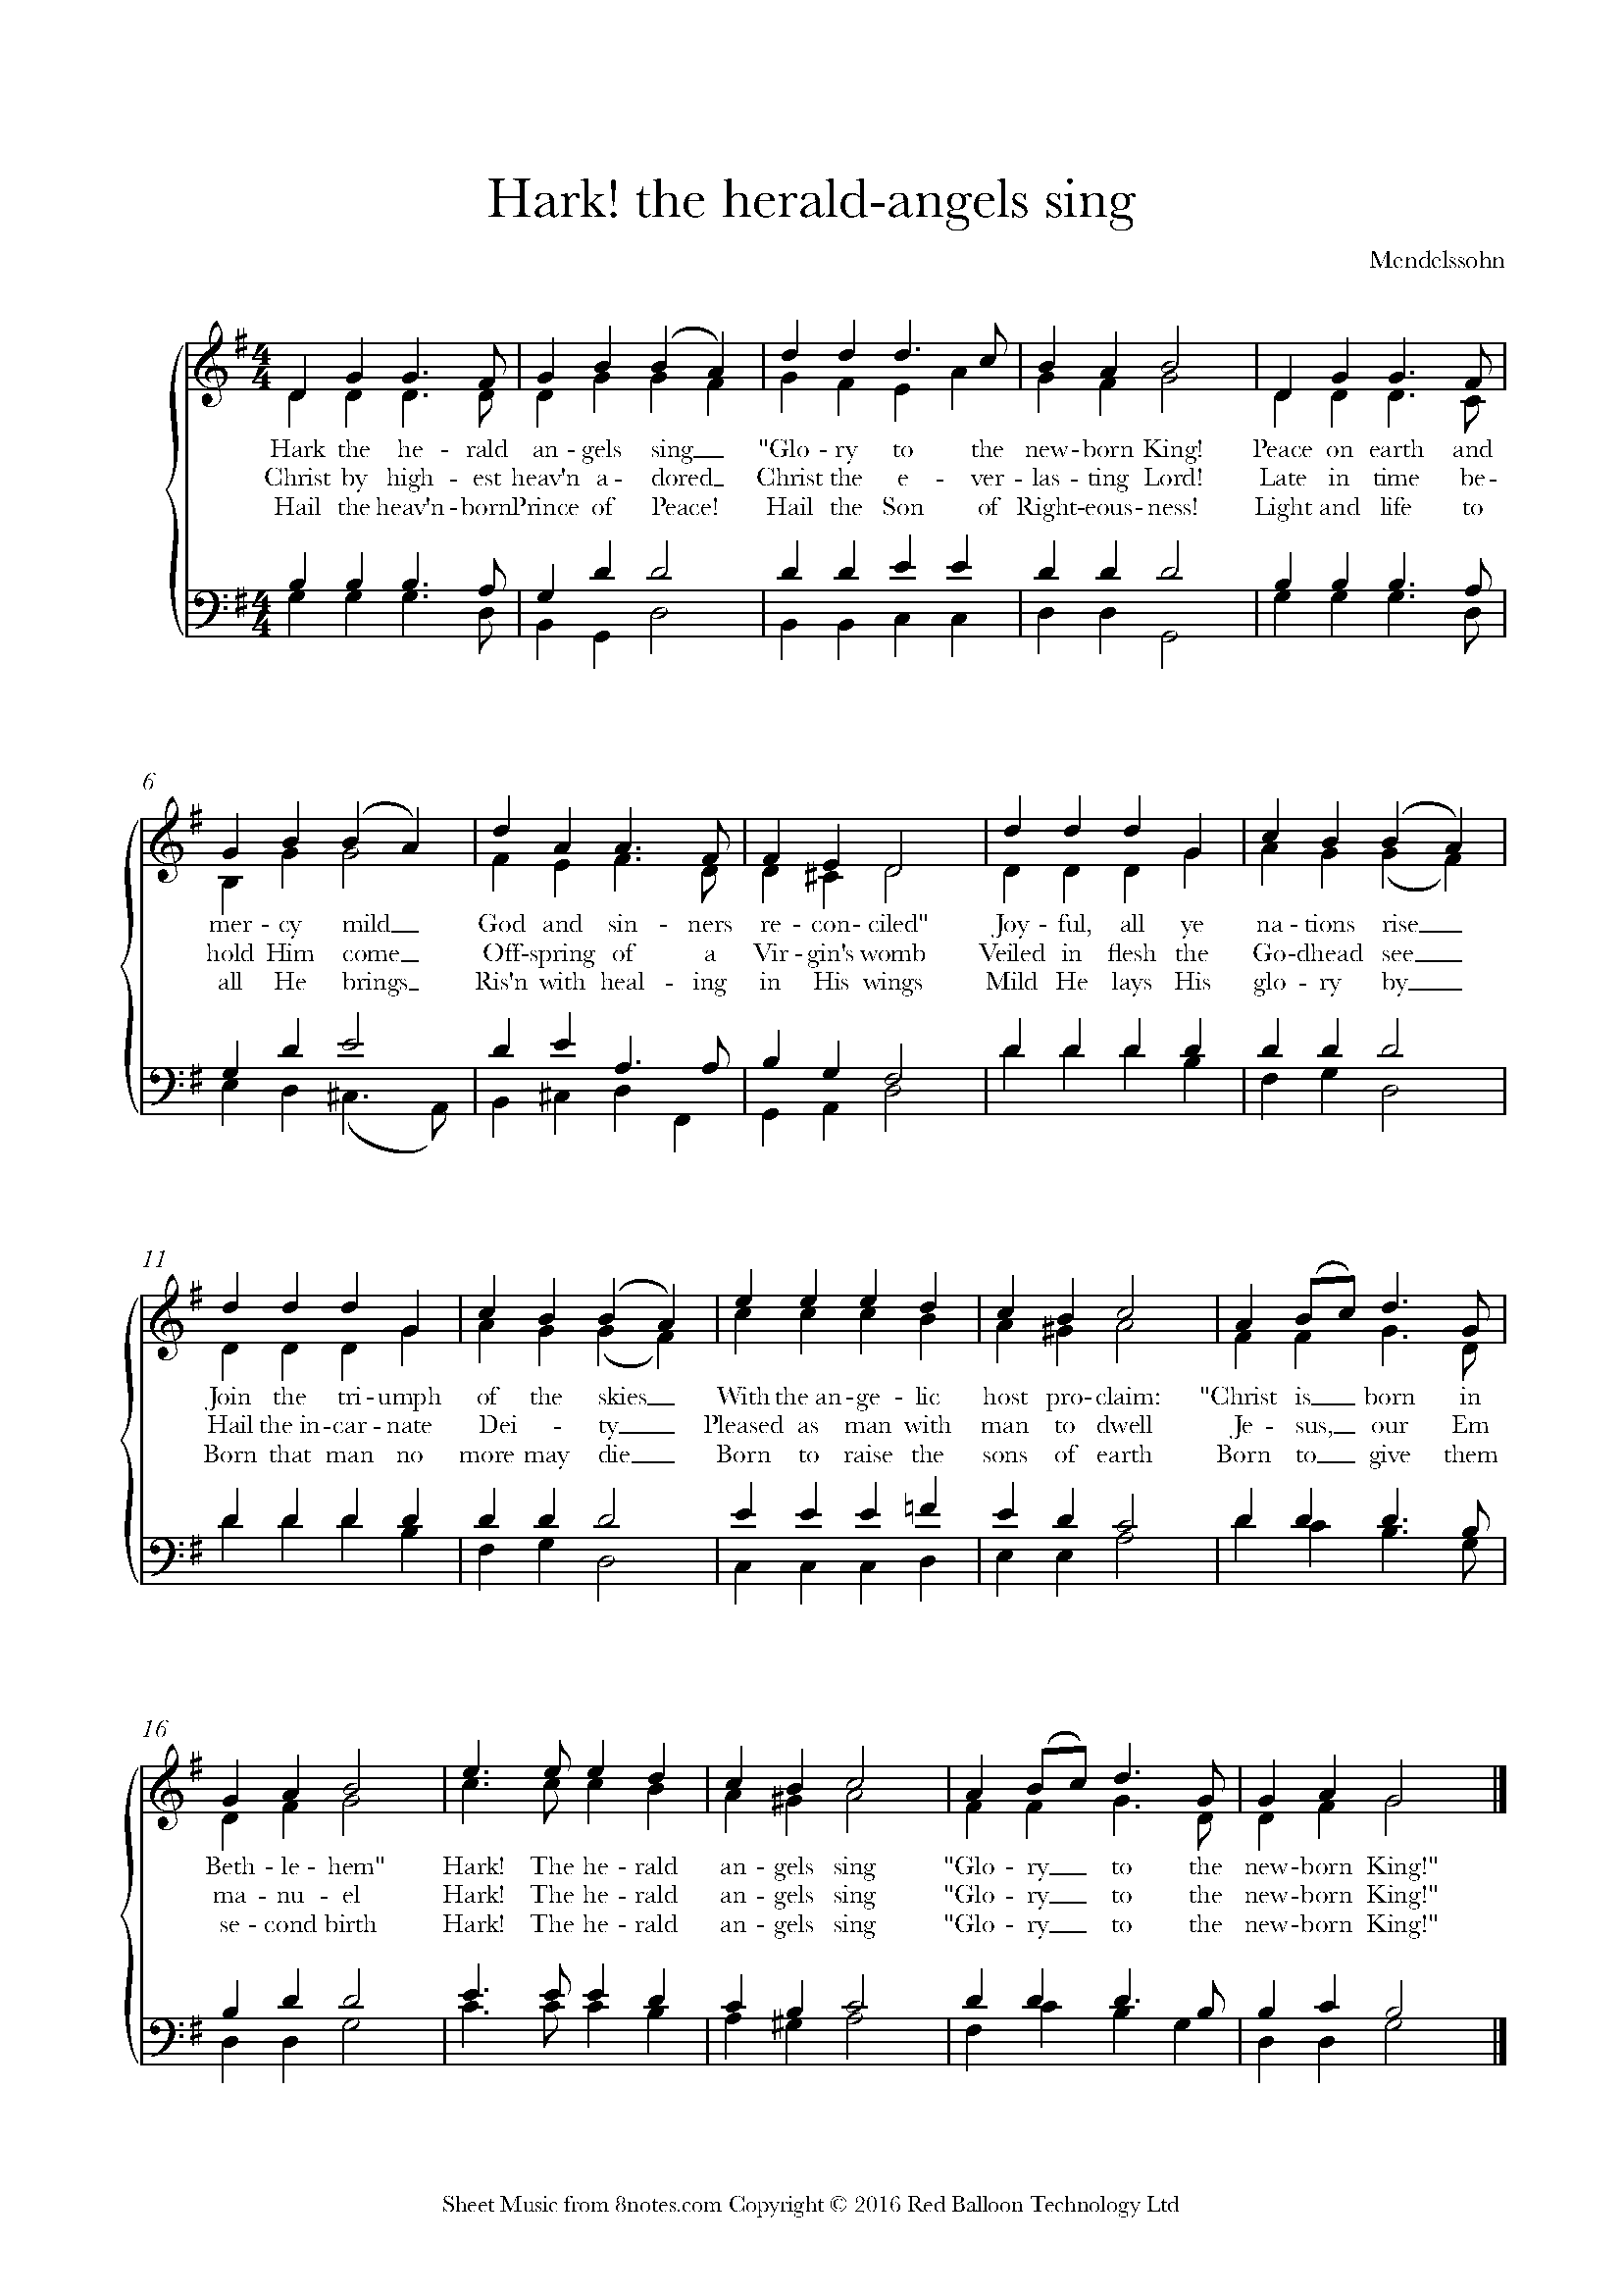 hark! the herald angels sing sheet music for piano - 8notes.com  8notes